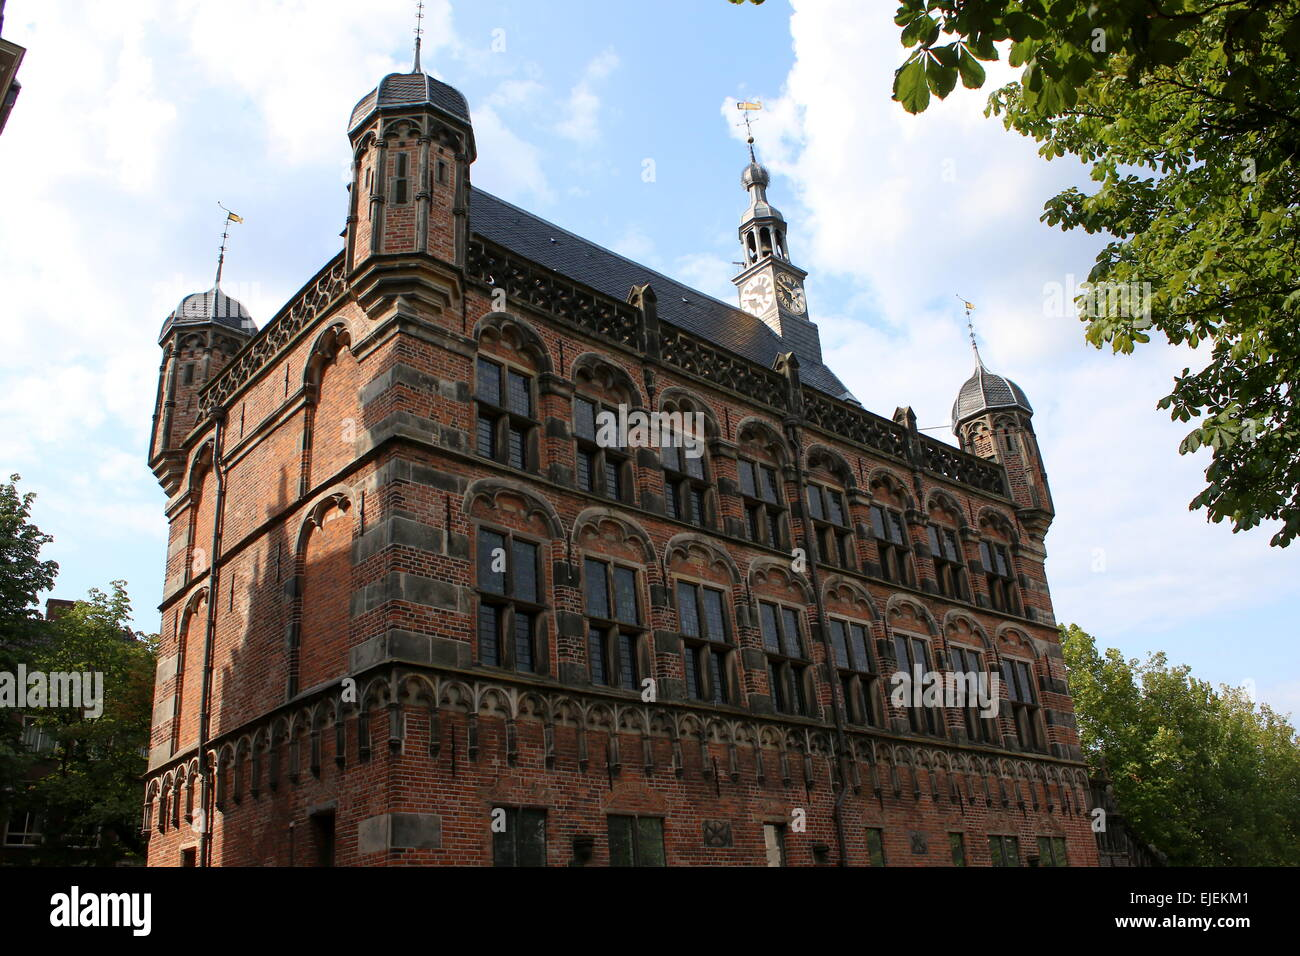 Facade and turrets of the 16th century Weighing House (Waag gebouw) on Brink square in Deventer, The Netherlands - Stock Image